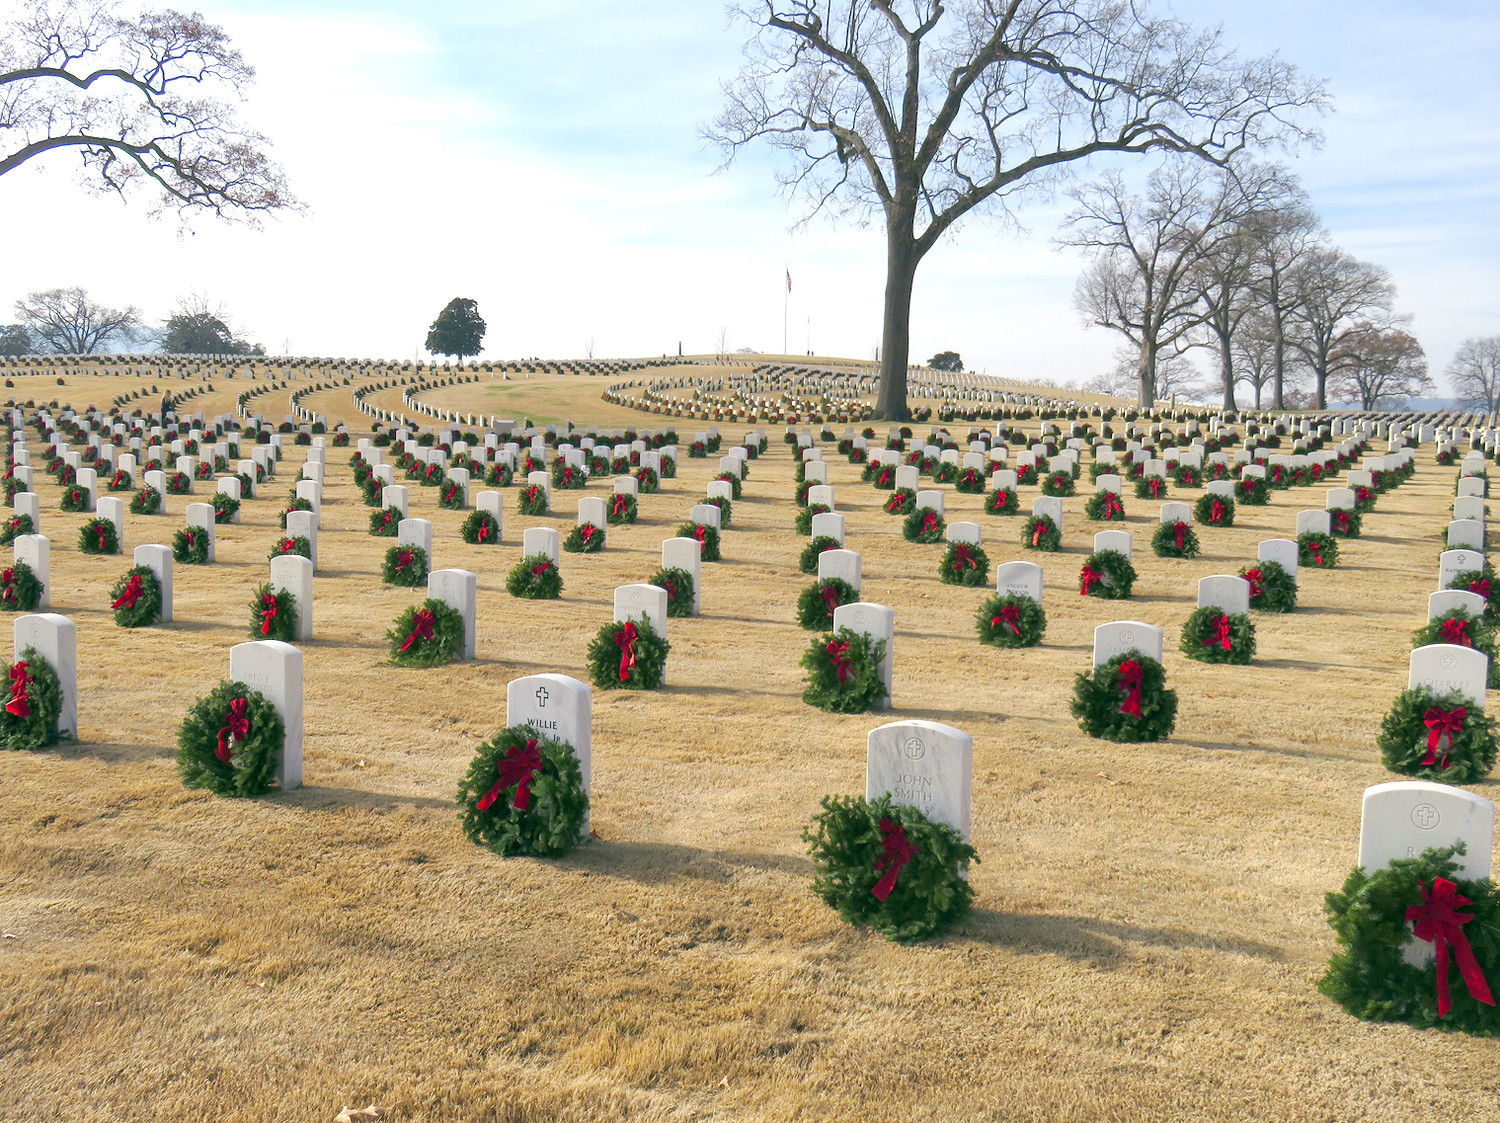 THE COL. BENJAMIN Cleveland Chapter of the Sons of the American Revolution participated in Wreaths Across America, in Chattanooga National Cemetery.